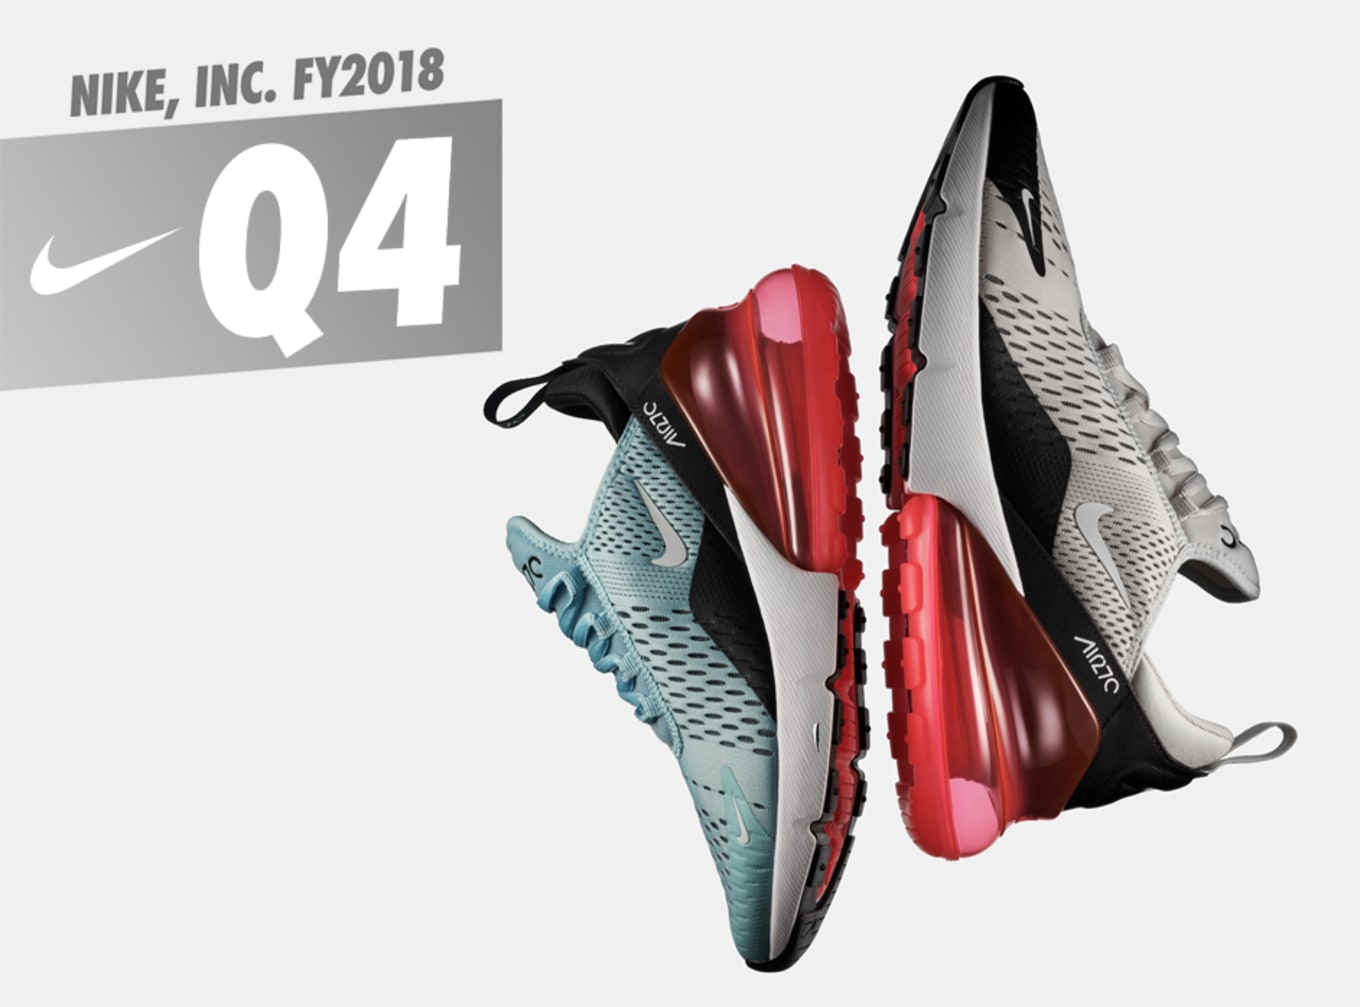 46bedda3b44f Nike Revenue Jumps to  9.8 Billion in Q4